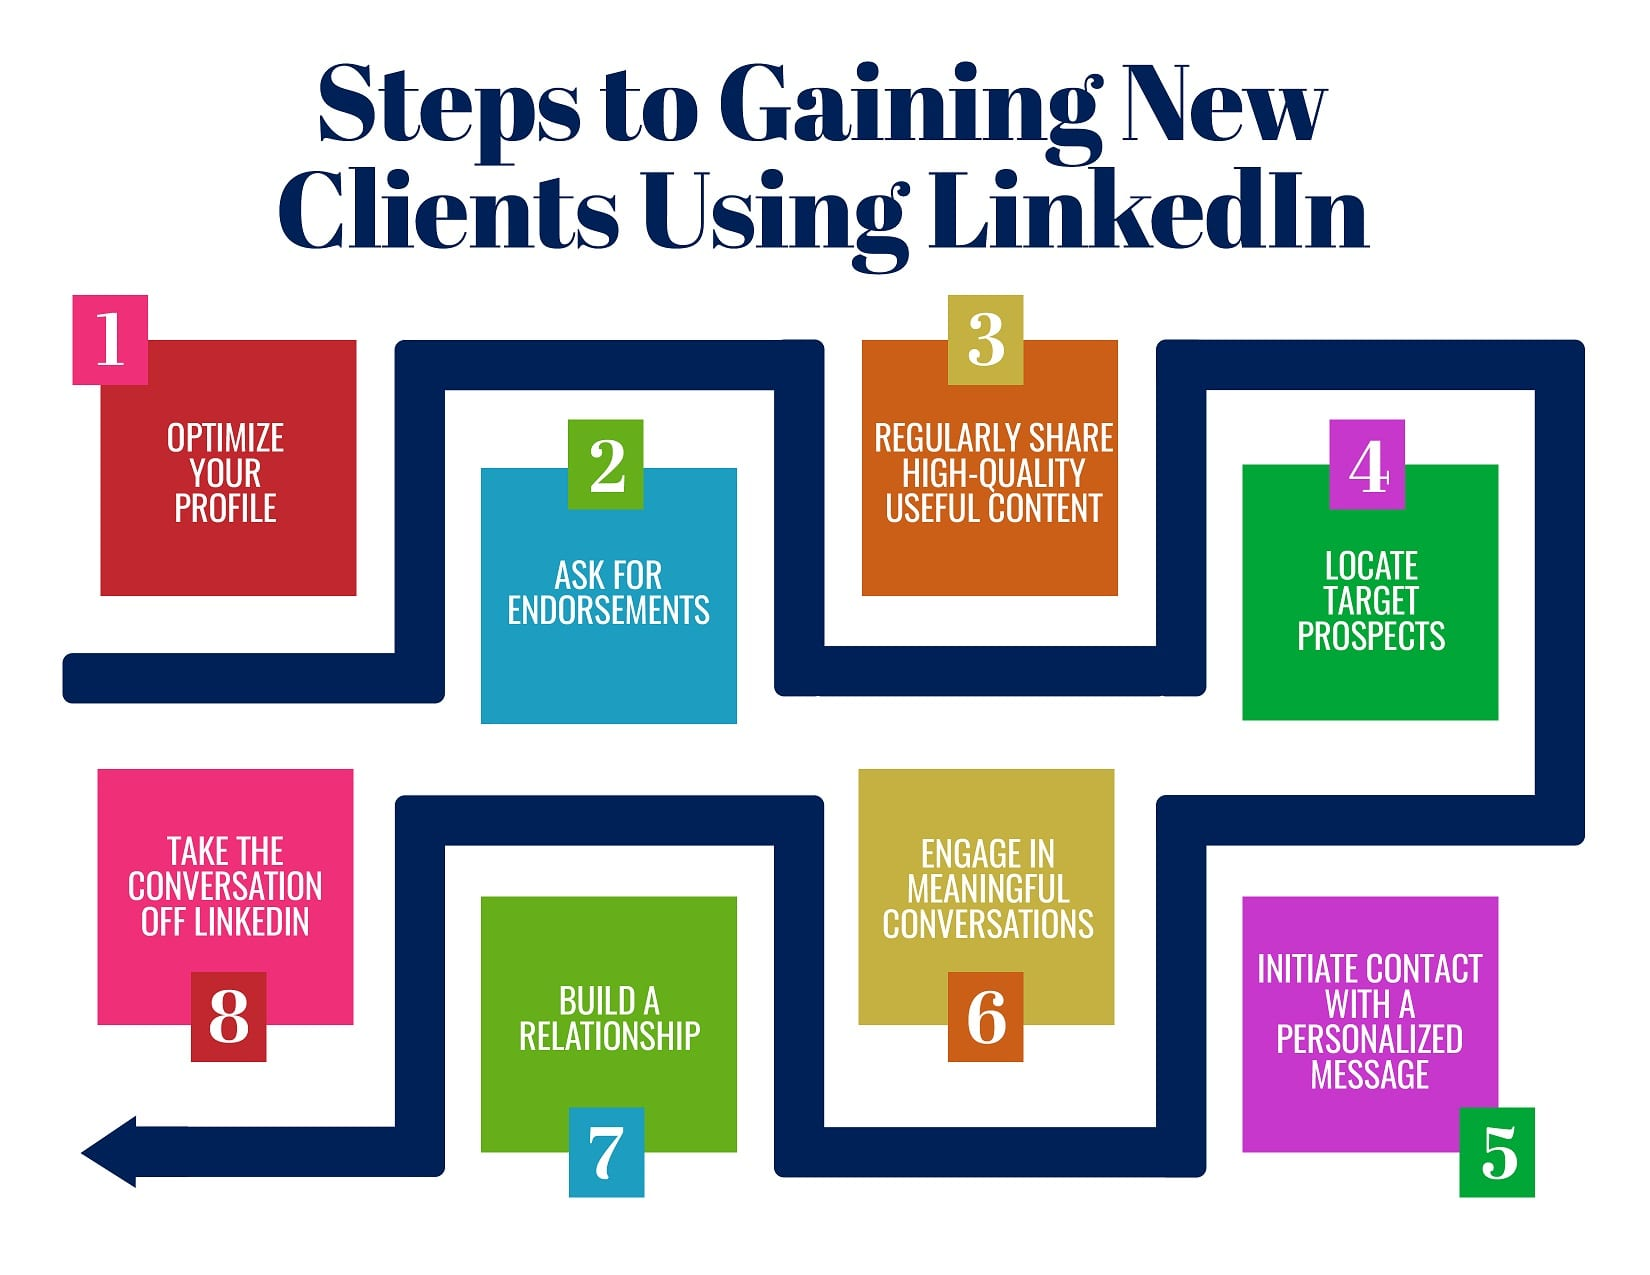 how to build relationships on LinkedIn